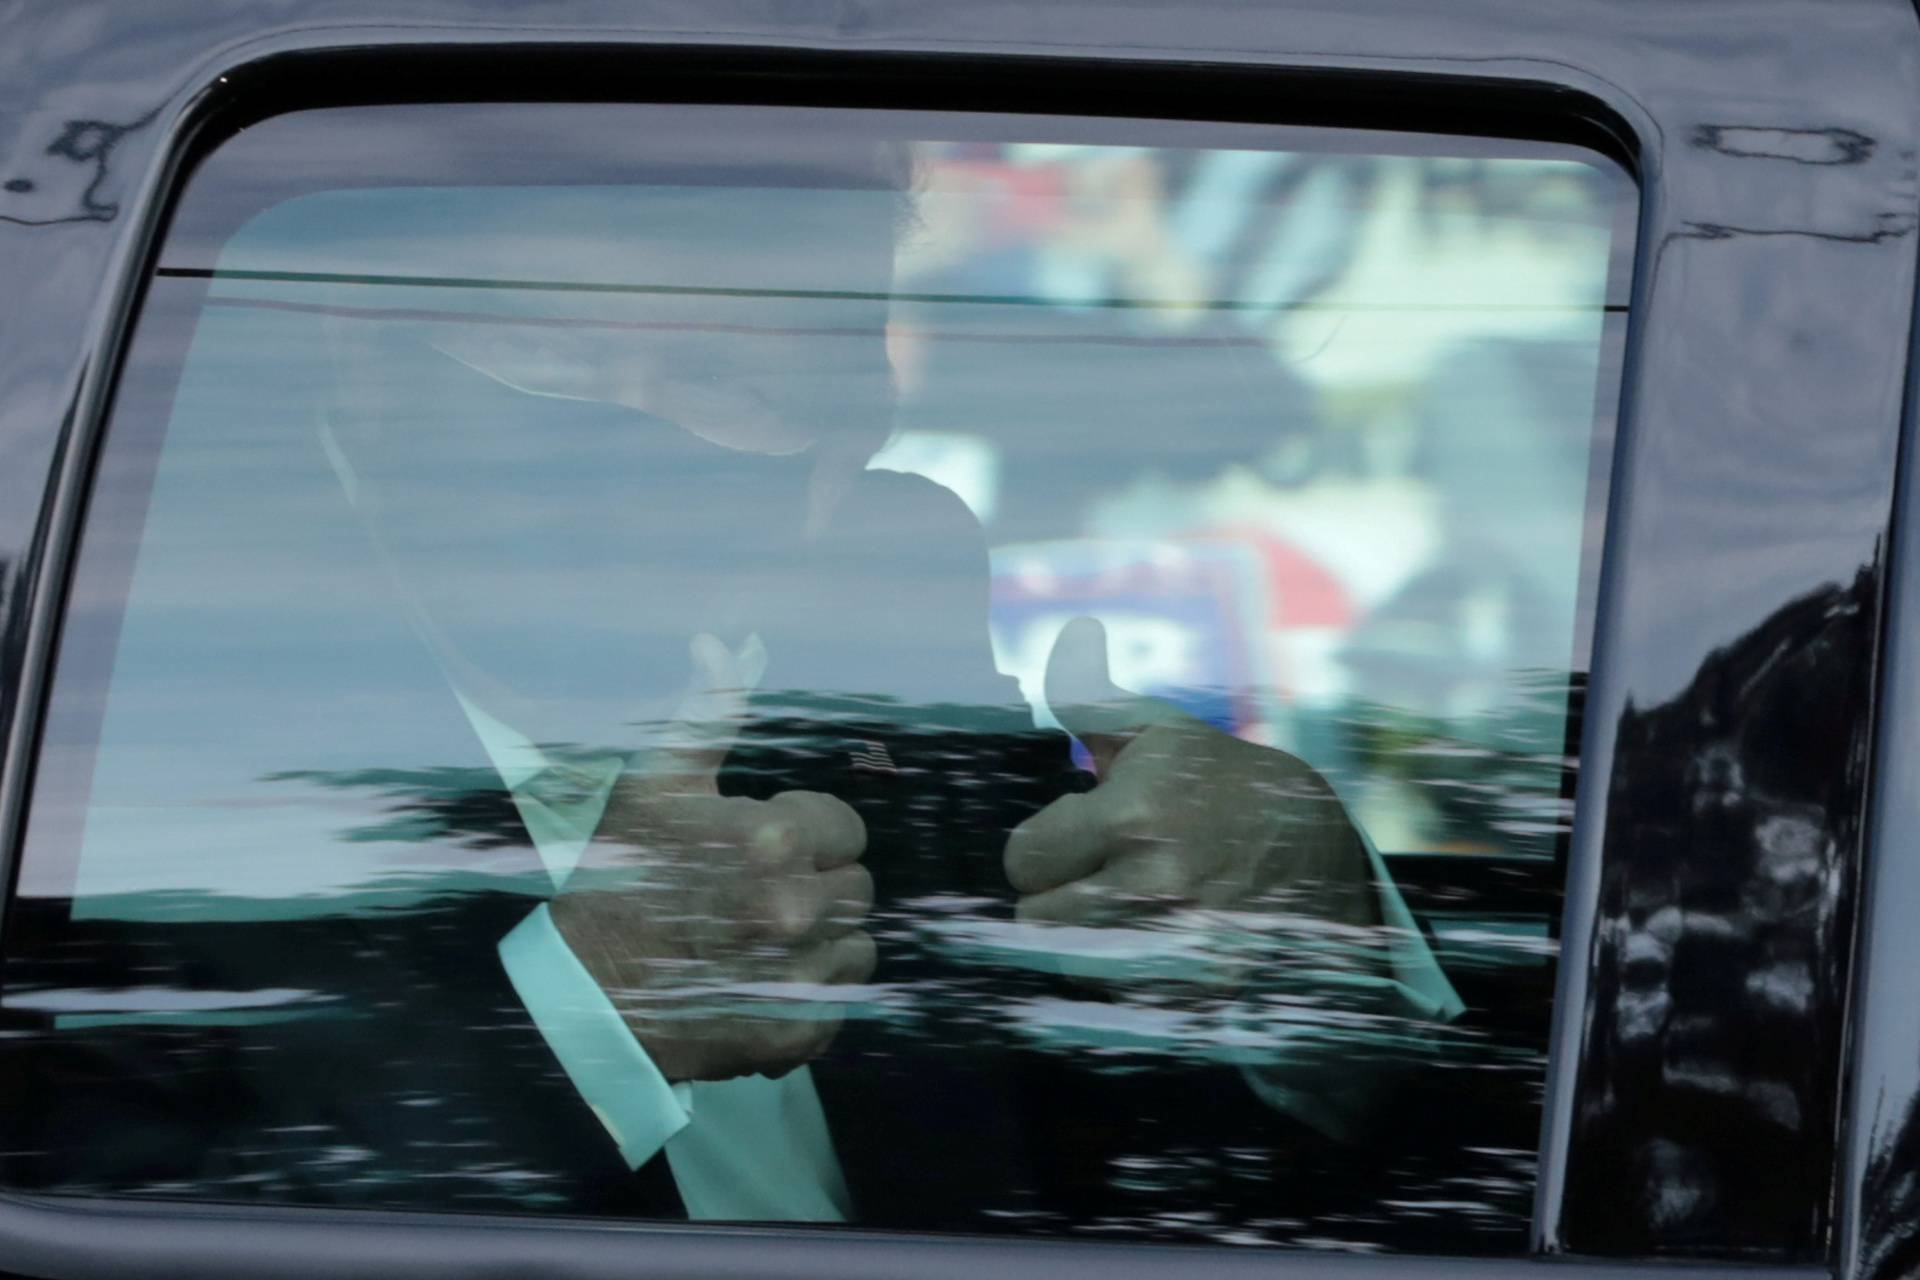 FILE PHOTO: U.S. President Donald Trump gestures from a car as he rides in front of  the Walter Reed National Military Medical Center, where he is being treated for the coronavirus disease (COVID-19) in Bethesda, Maryland